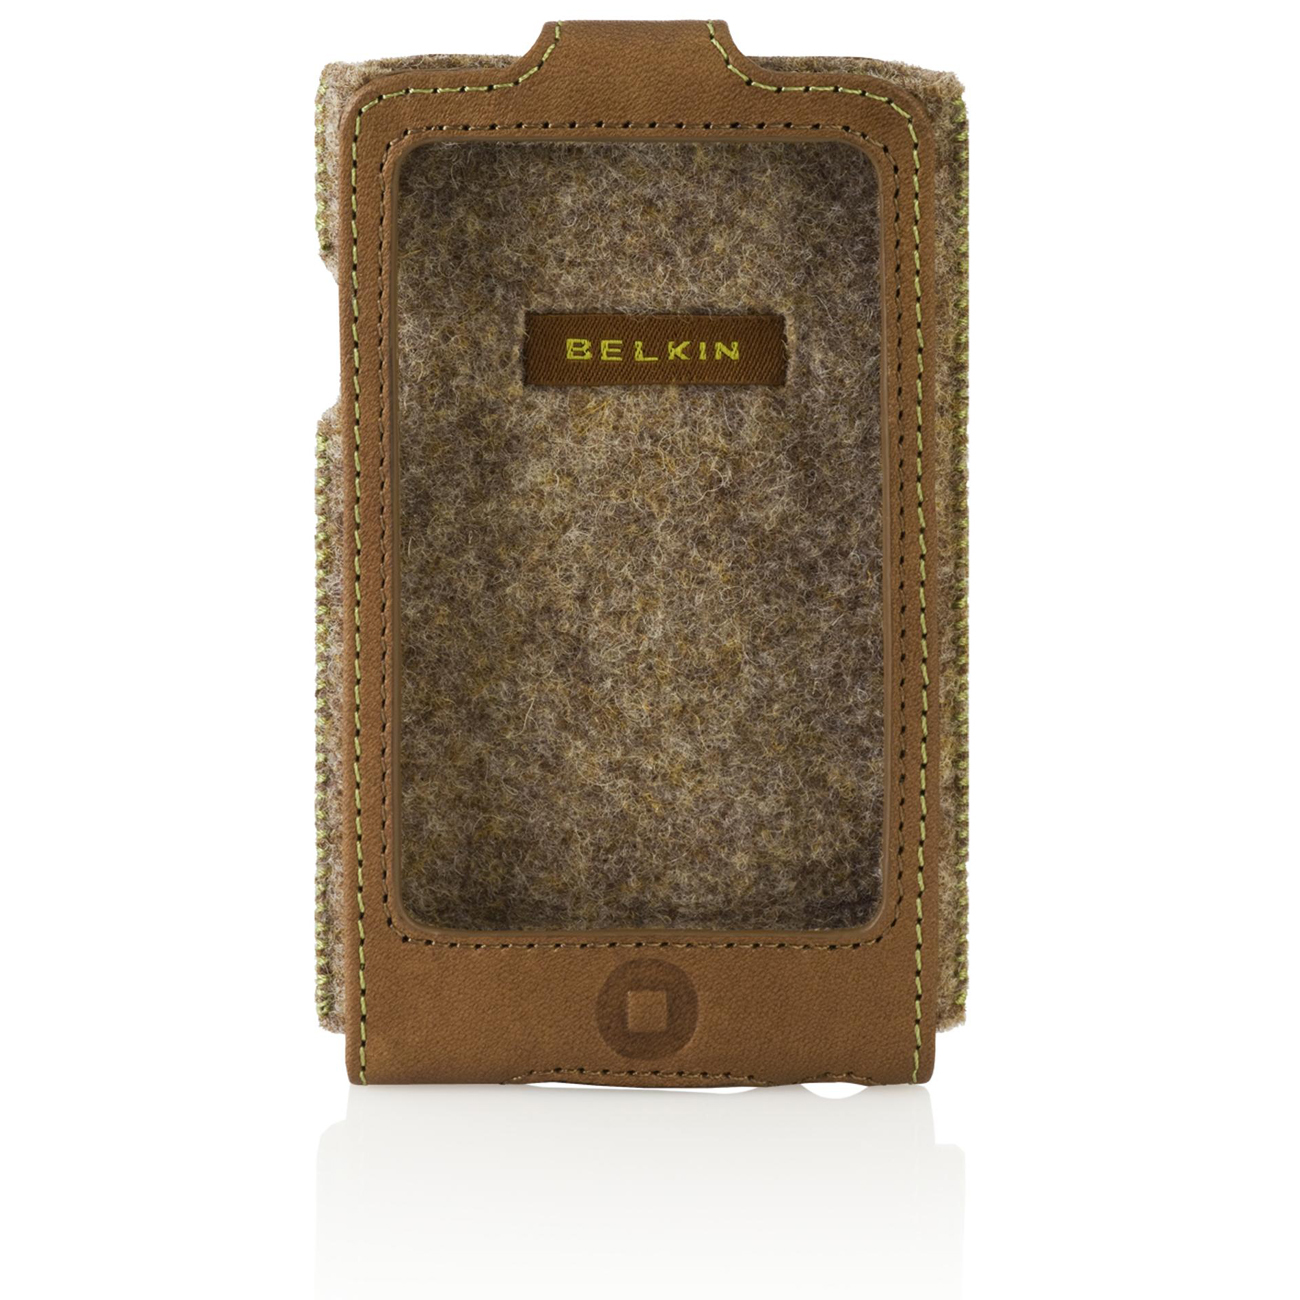 Belkin Eco-Conscious Sleeve for iPod touch 2G - Leather - Walnut